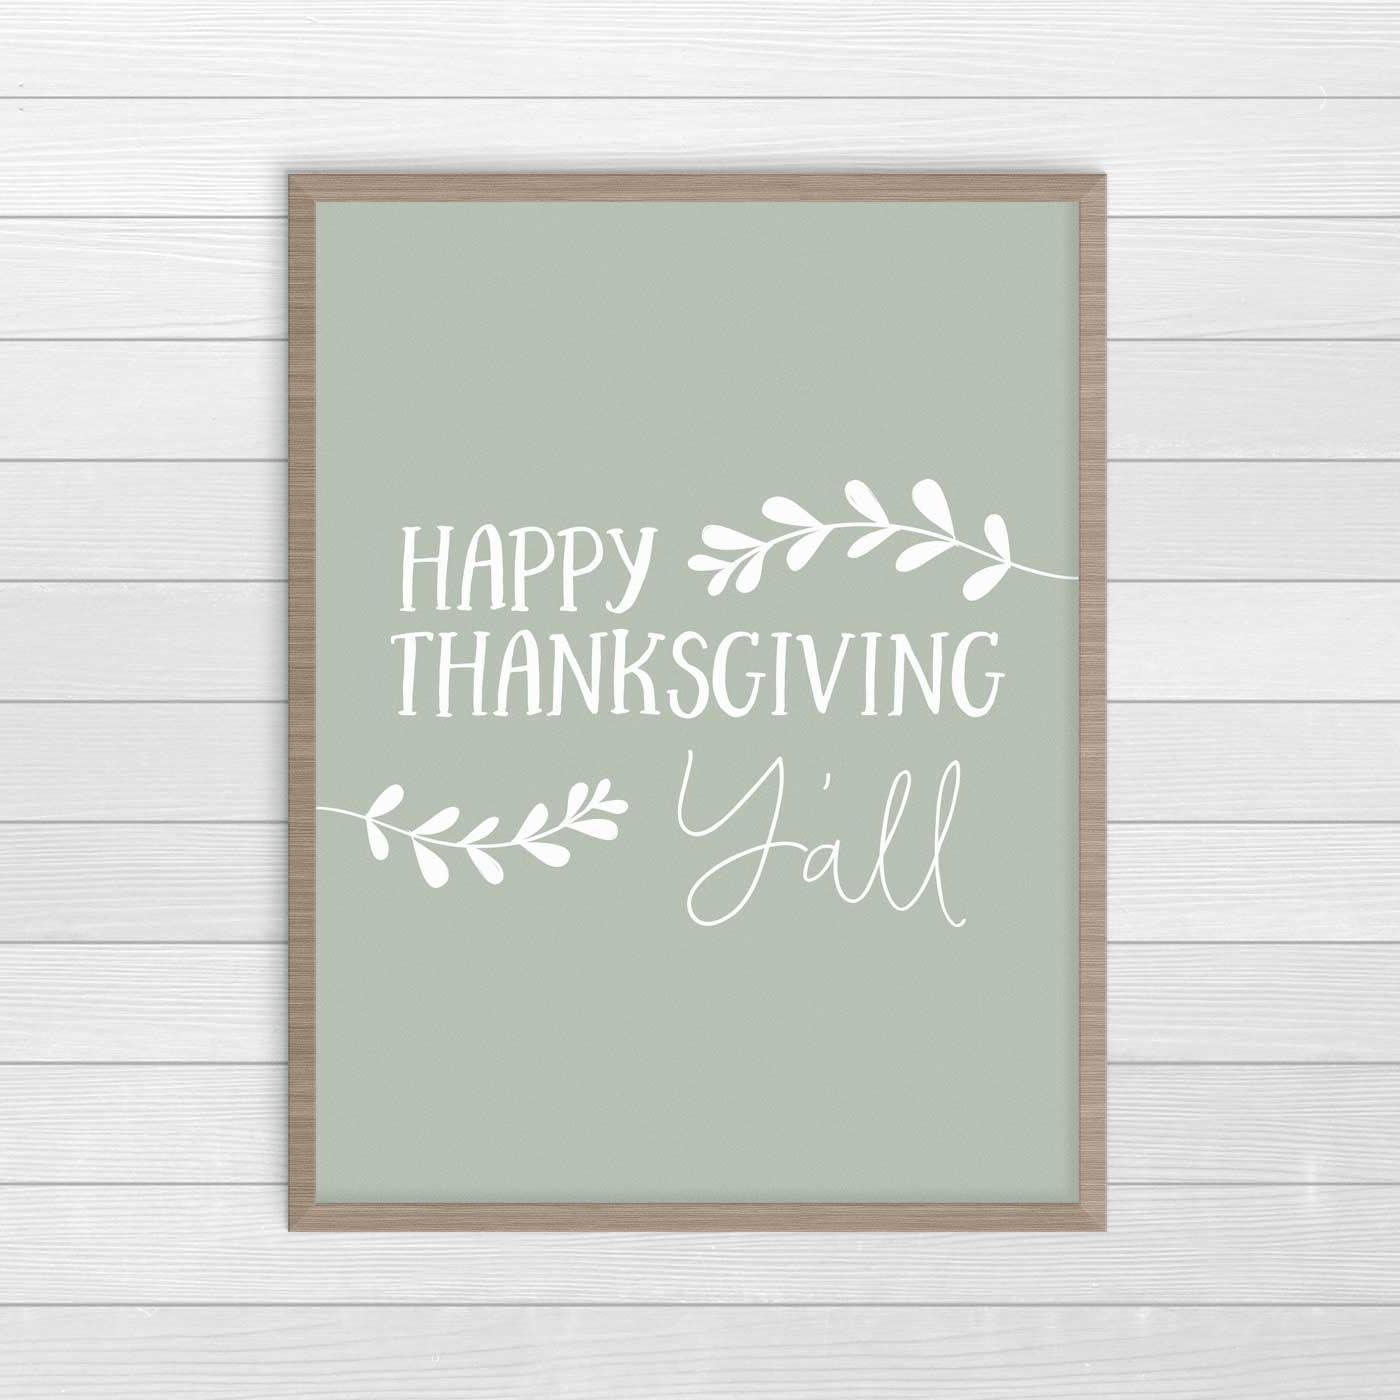 Happy Thanksgiving free printable wall art for Farmhouse decor. #FarmhouseDecor #ThanksgivingDecor #FreePrintables